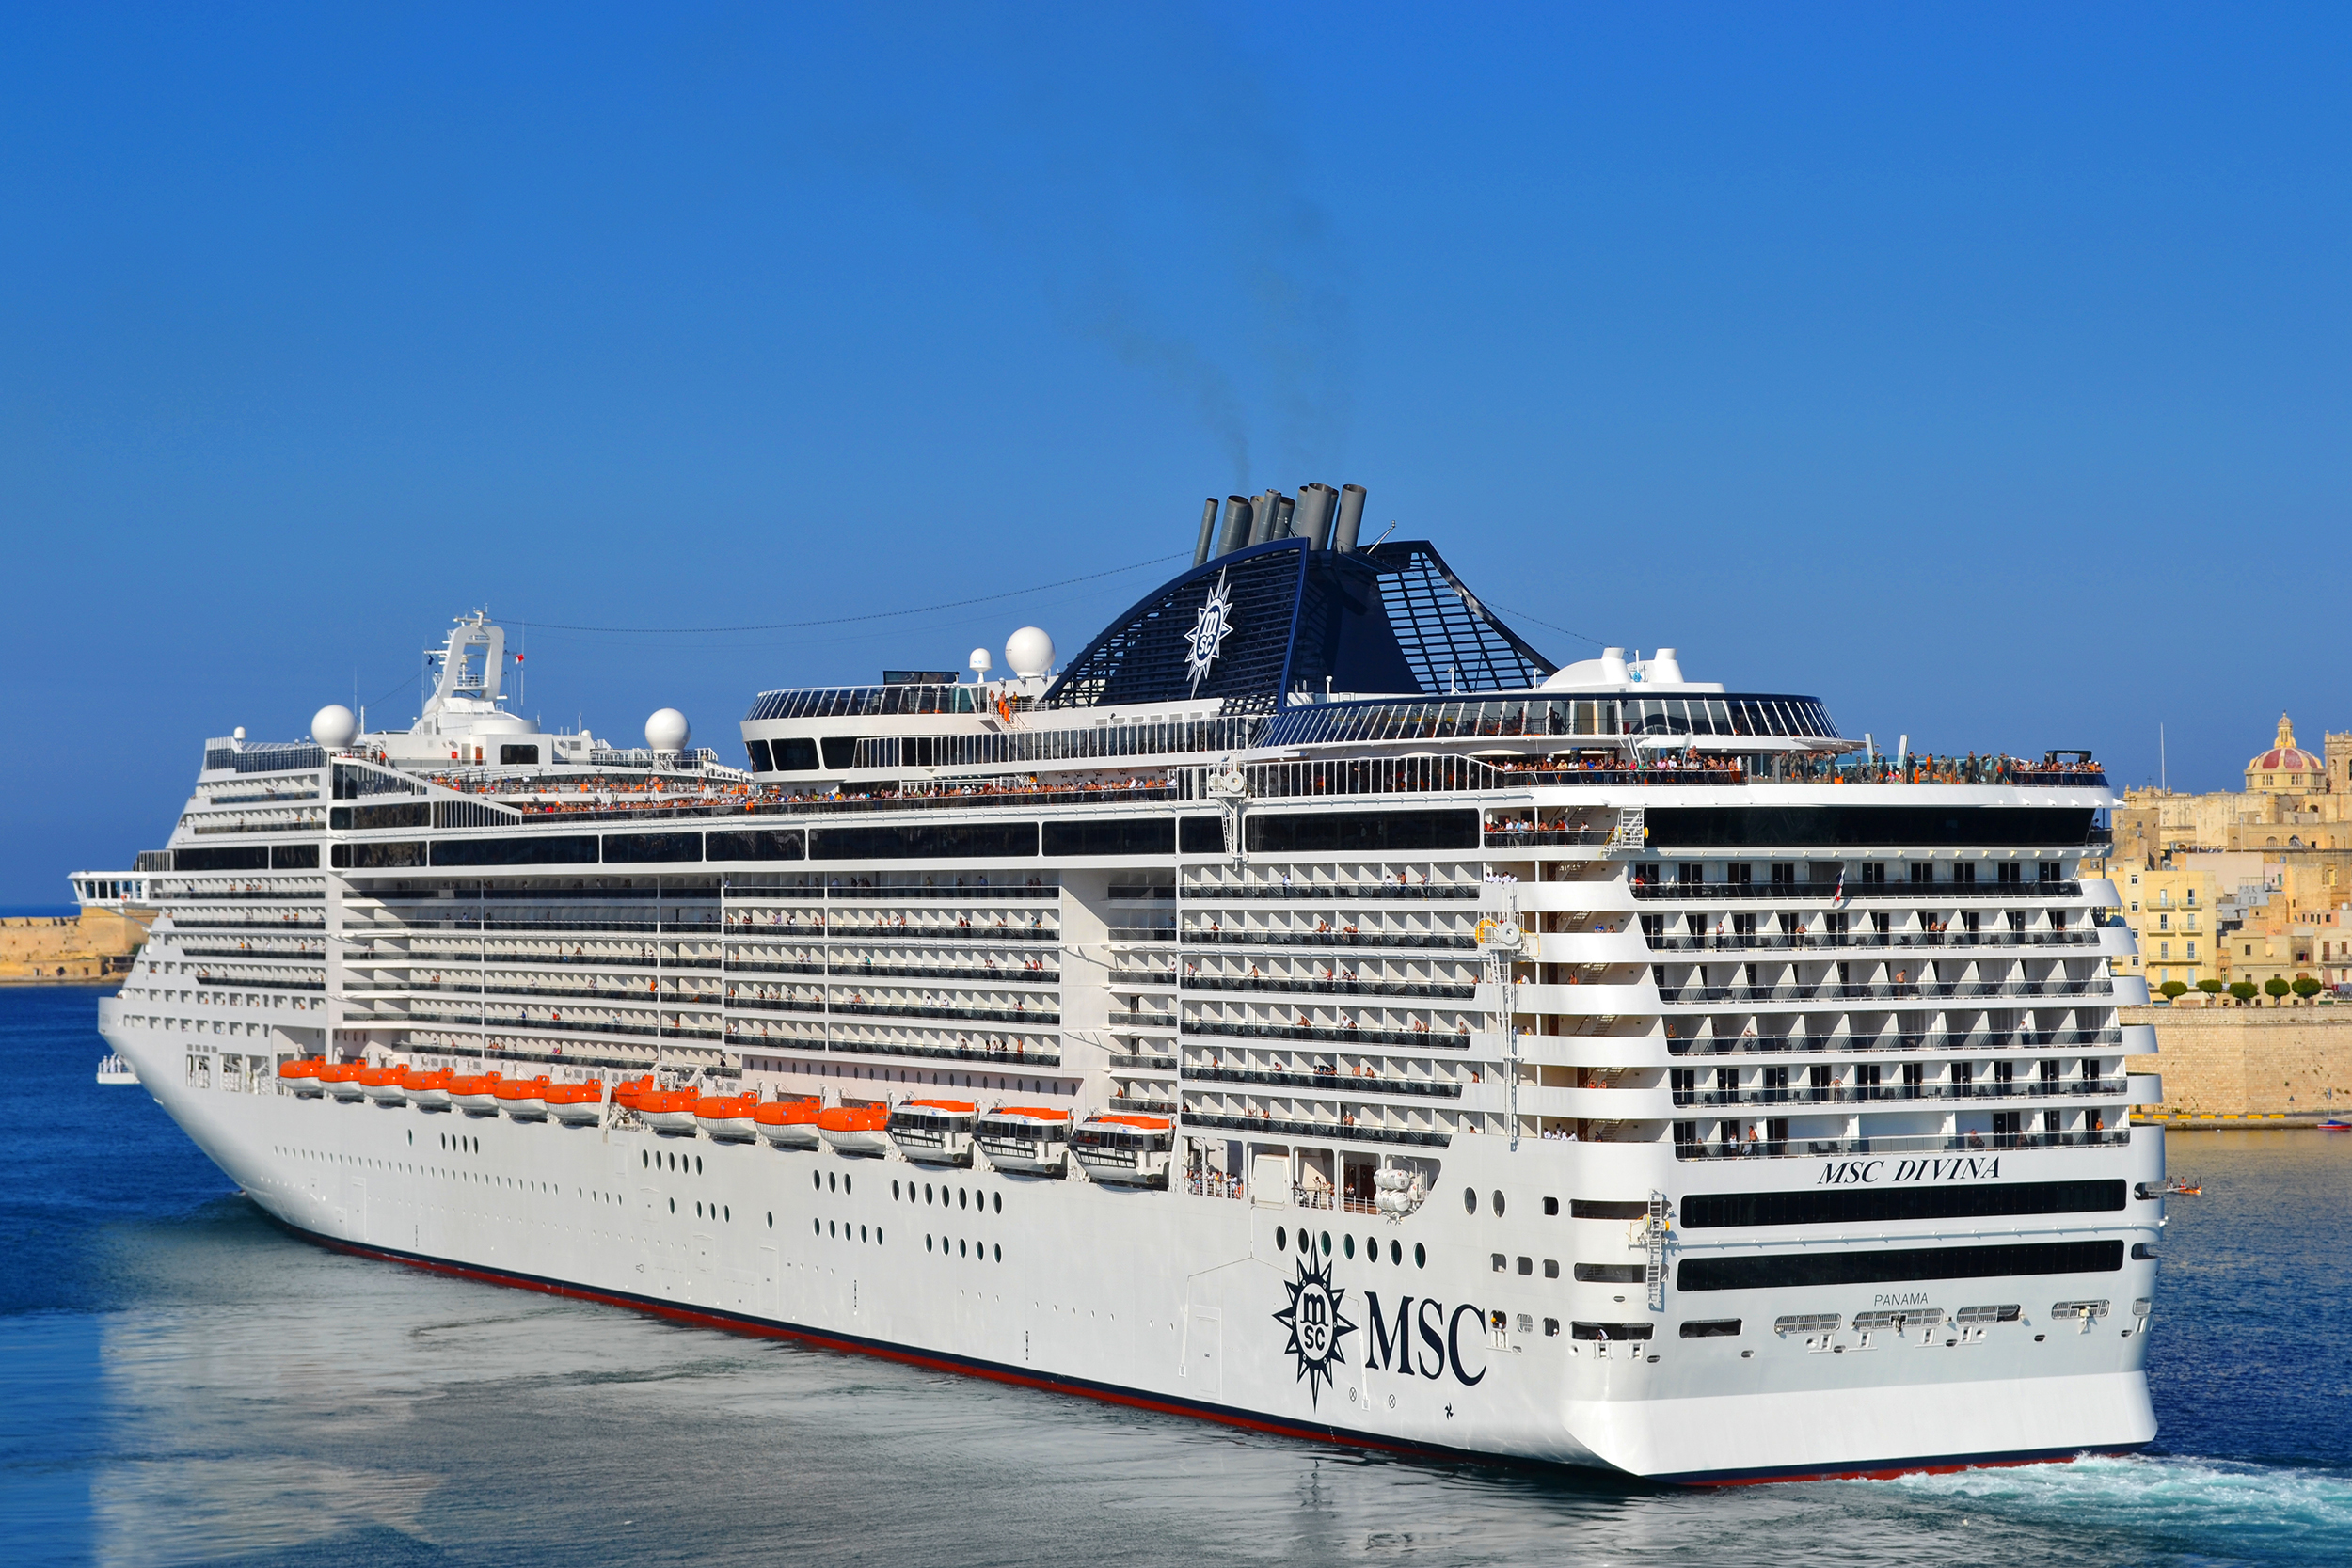 Kids Cruise Free in the Mediterranean and the Caribbean.. wahoo!